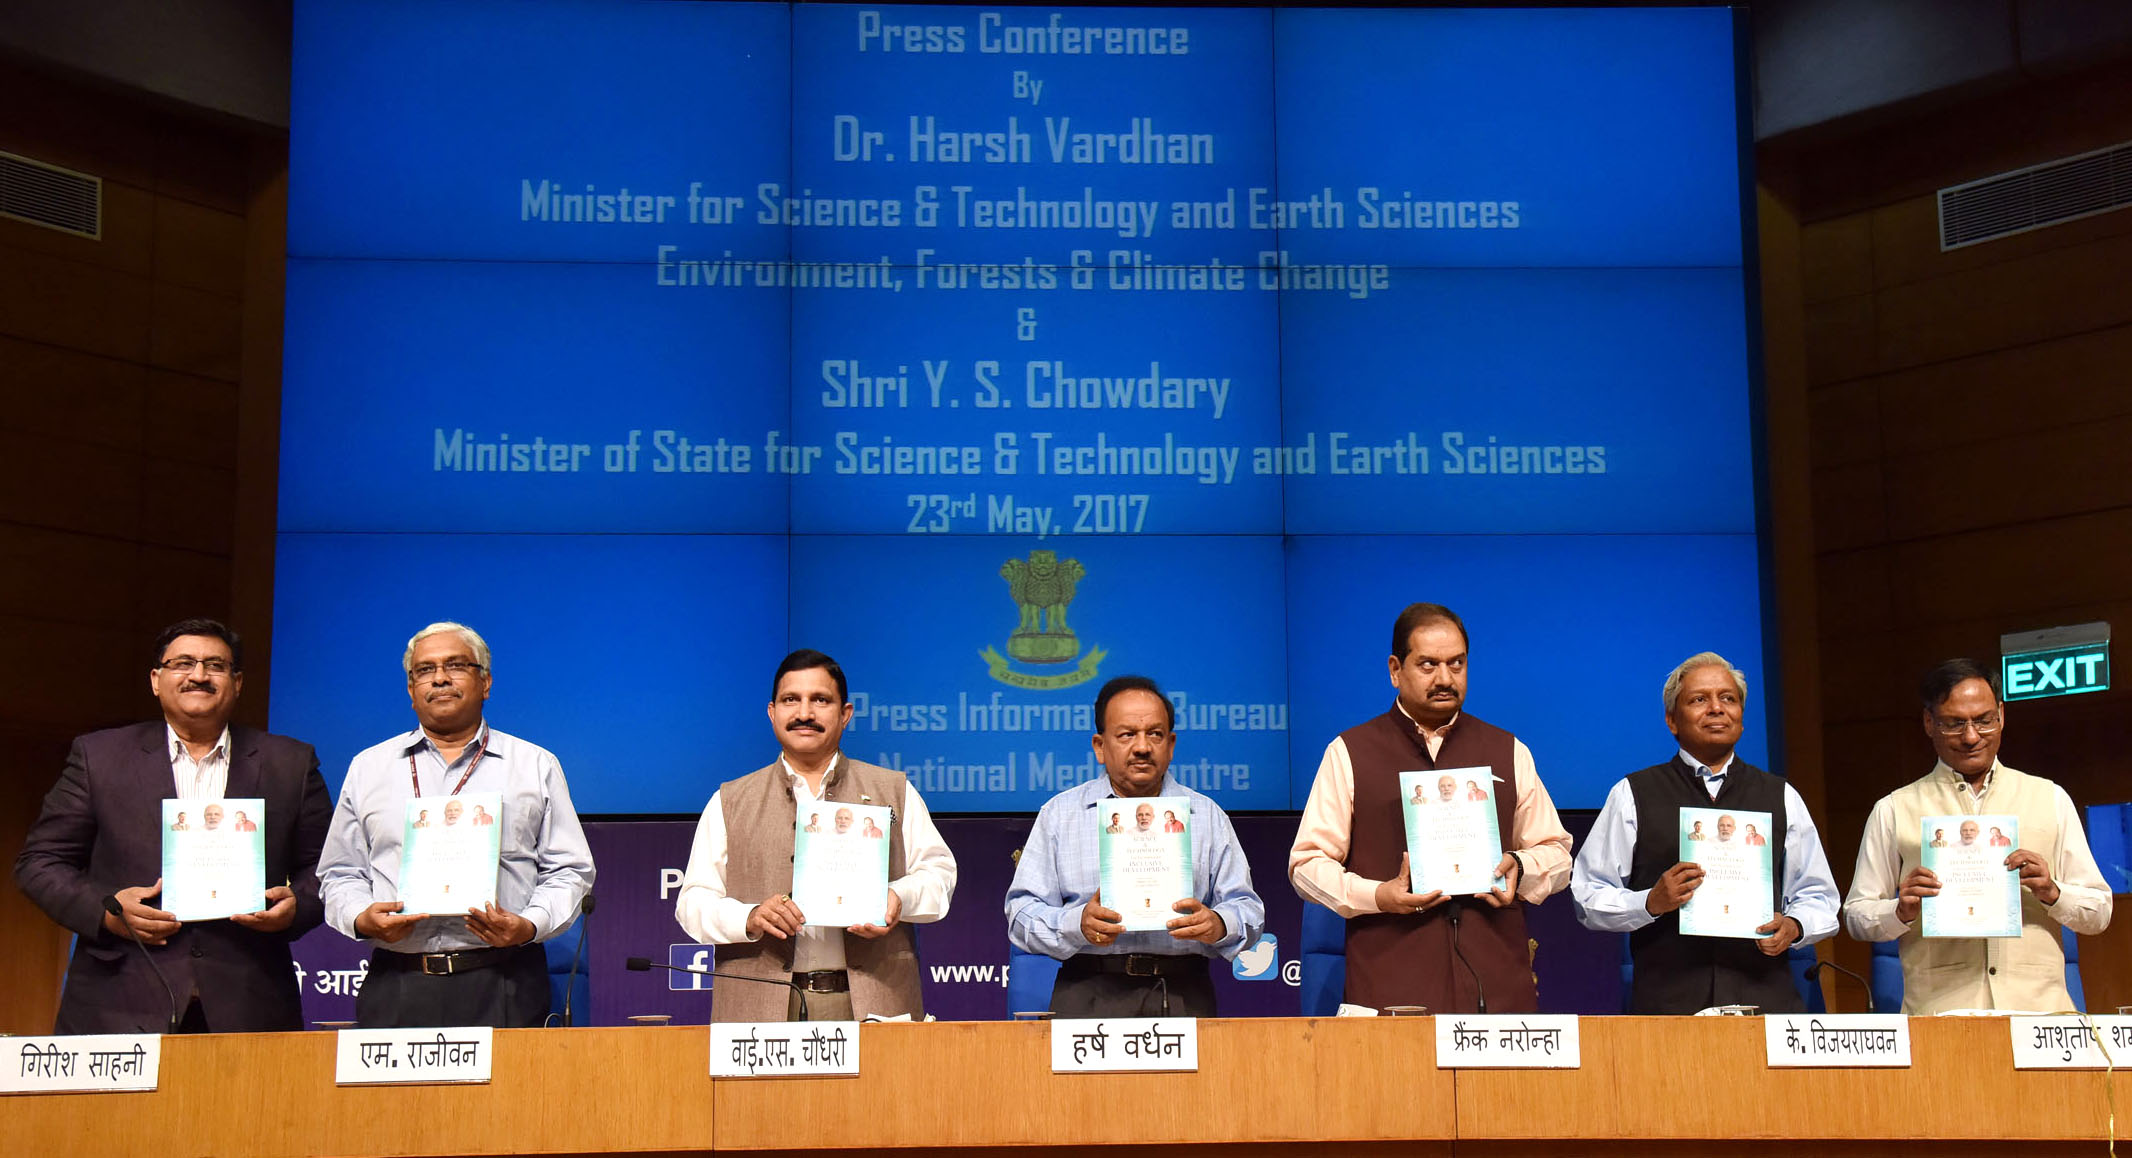 Hon'ble Minister and MOS revealed achievements in S&T for the last 3 years.